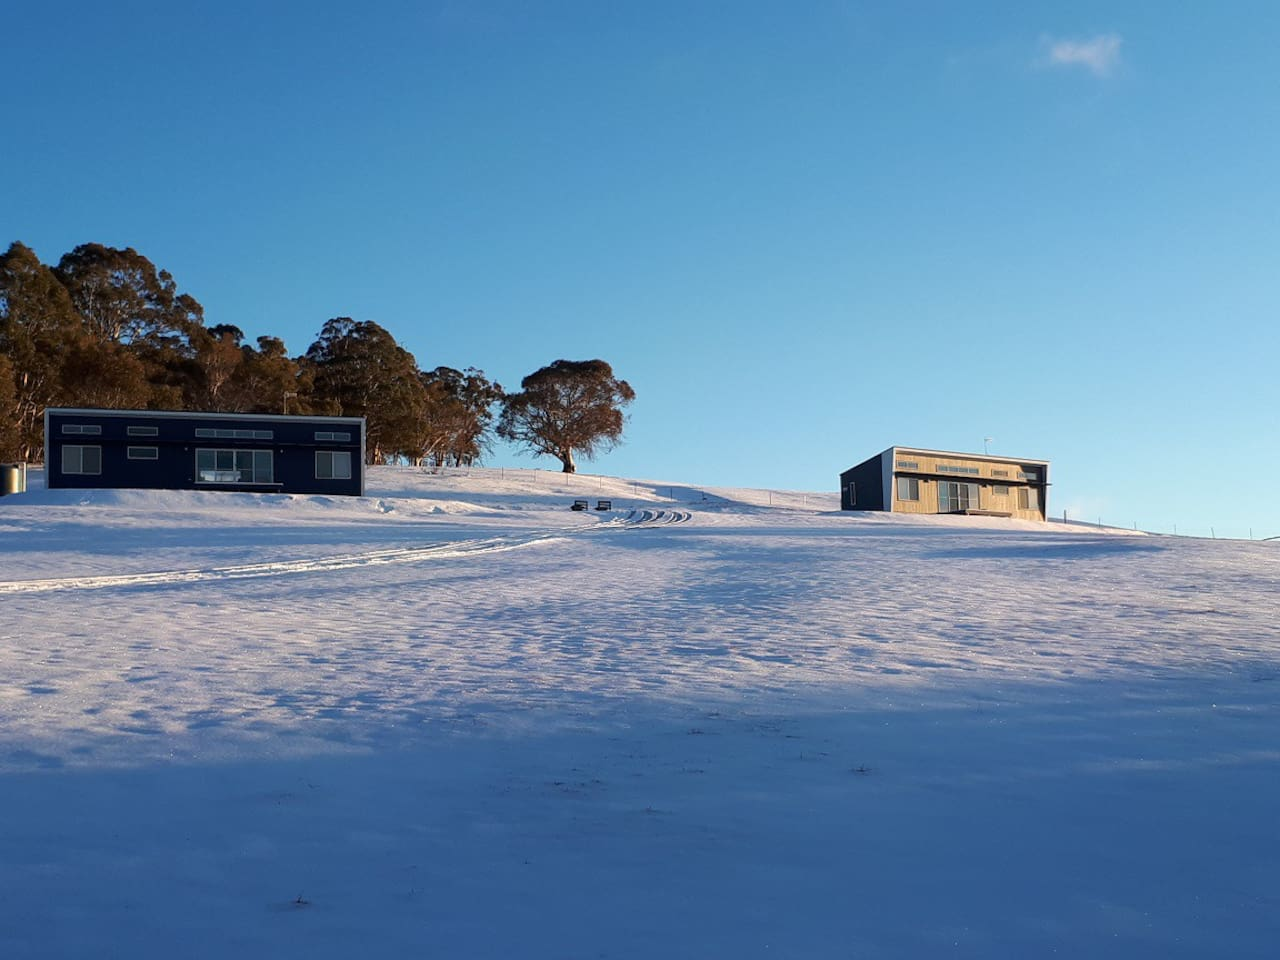 Eumcumbene Lakeview Cottages in snow. Kyloe on left and Yens on the right.